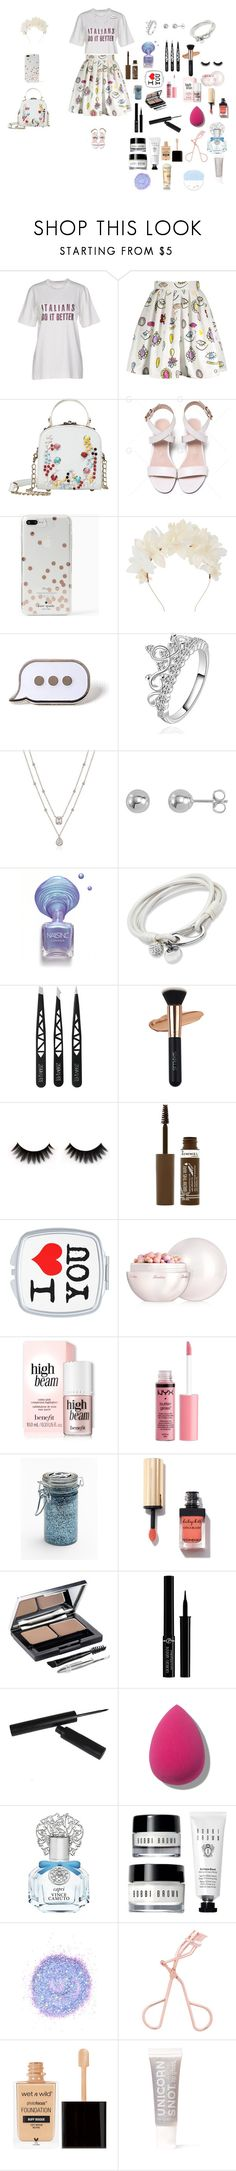 """""""Funny girl"""" by sierracook14 ❤ liked on Polyvore featuring Dolce&Gabbana, Kate Spade, Lizzie Fortunato, PINTRILL, Rimmel, Guerlain, Charlotte Russe, Major Moonshine, L'Oréal Paris and Giorgio Armani"""